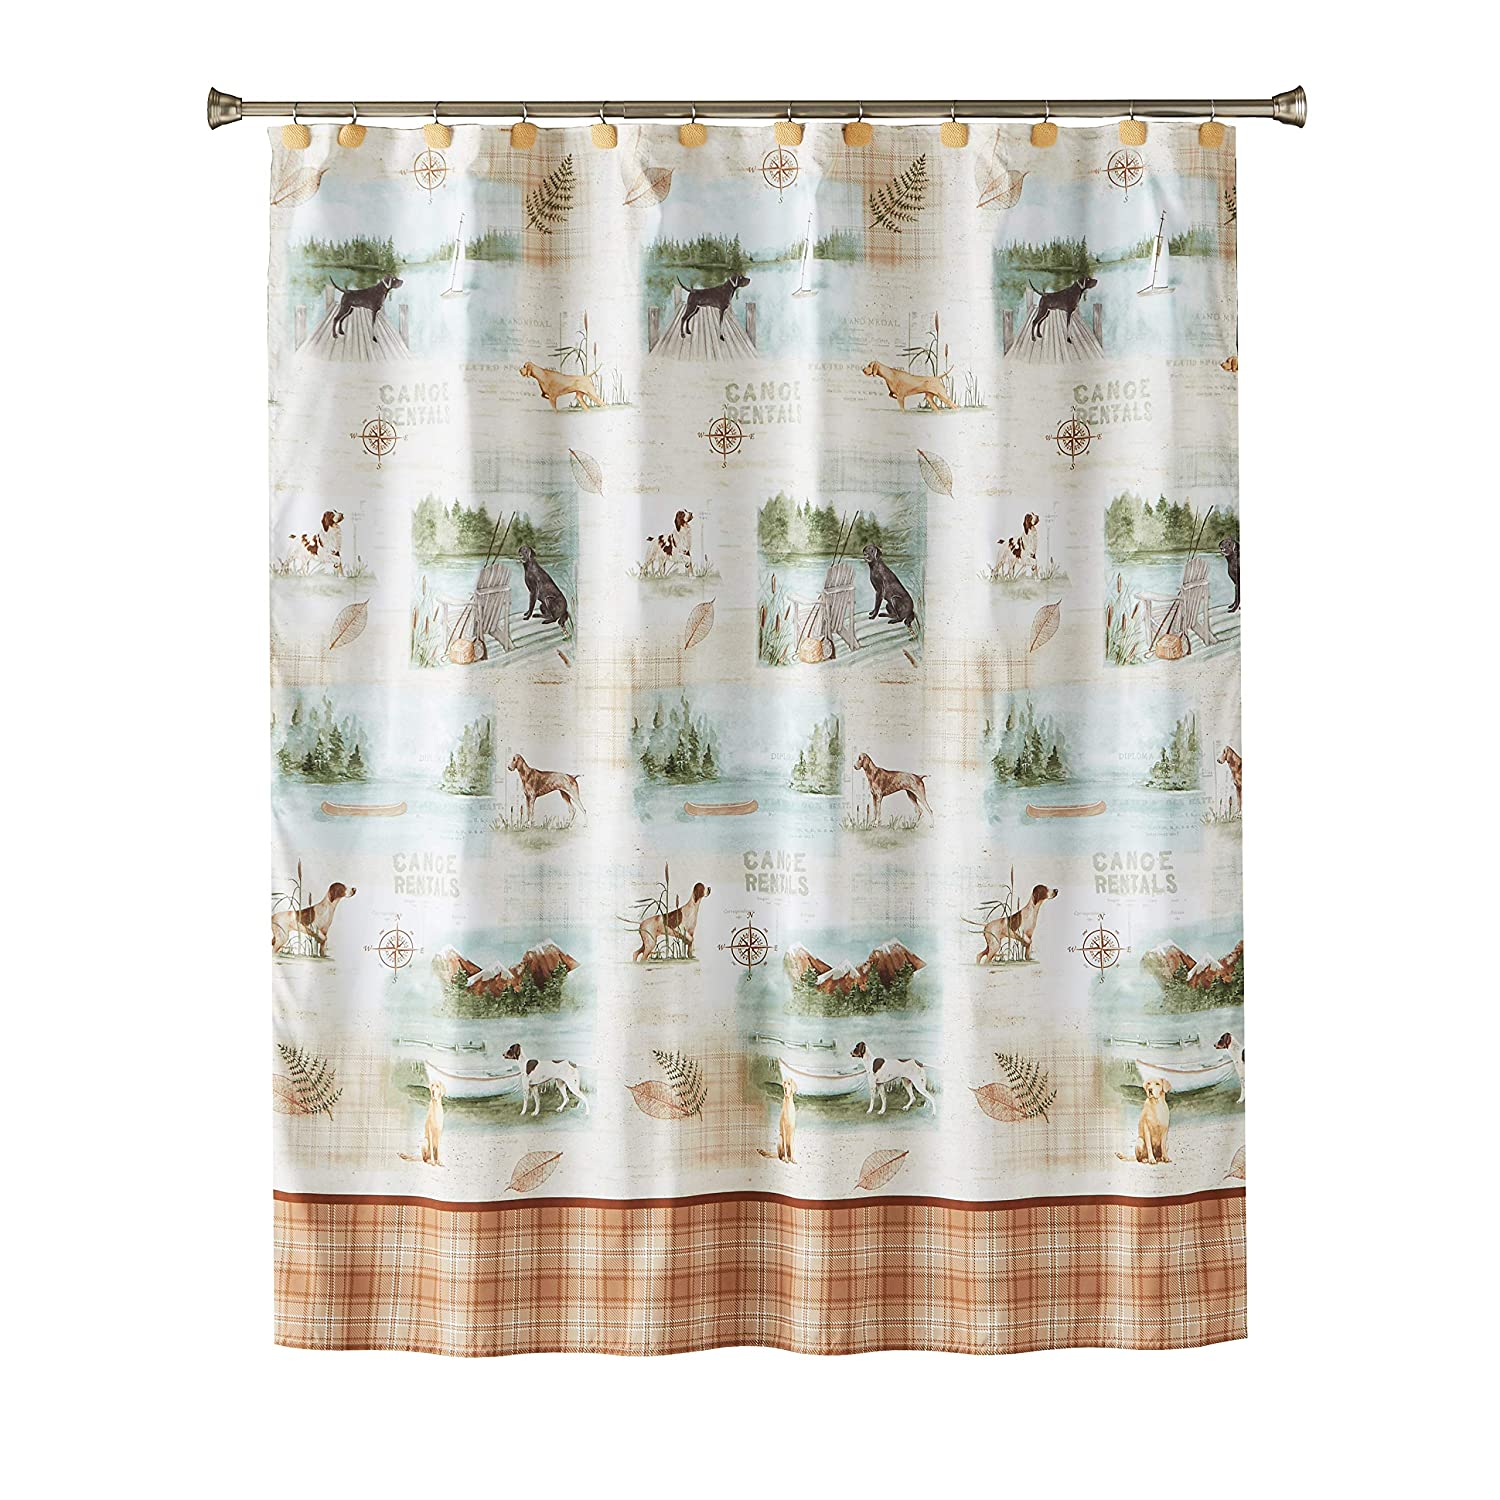 SKL Home by Saturday Knight Ltd. Adirondack Dogs Fabric Shower Curtain, Multicolored